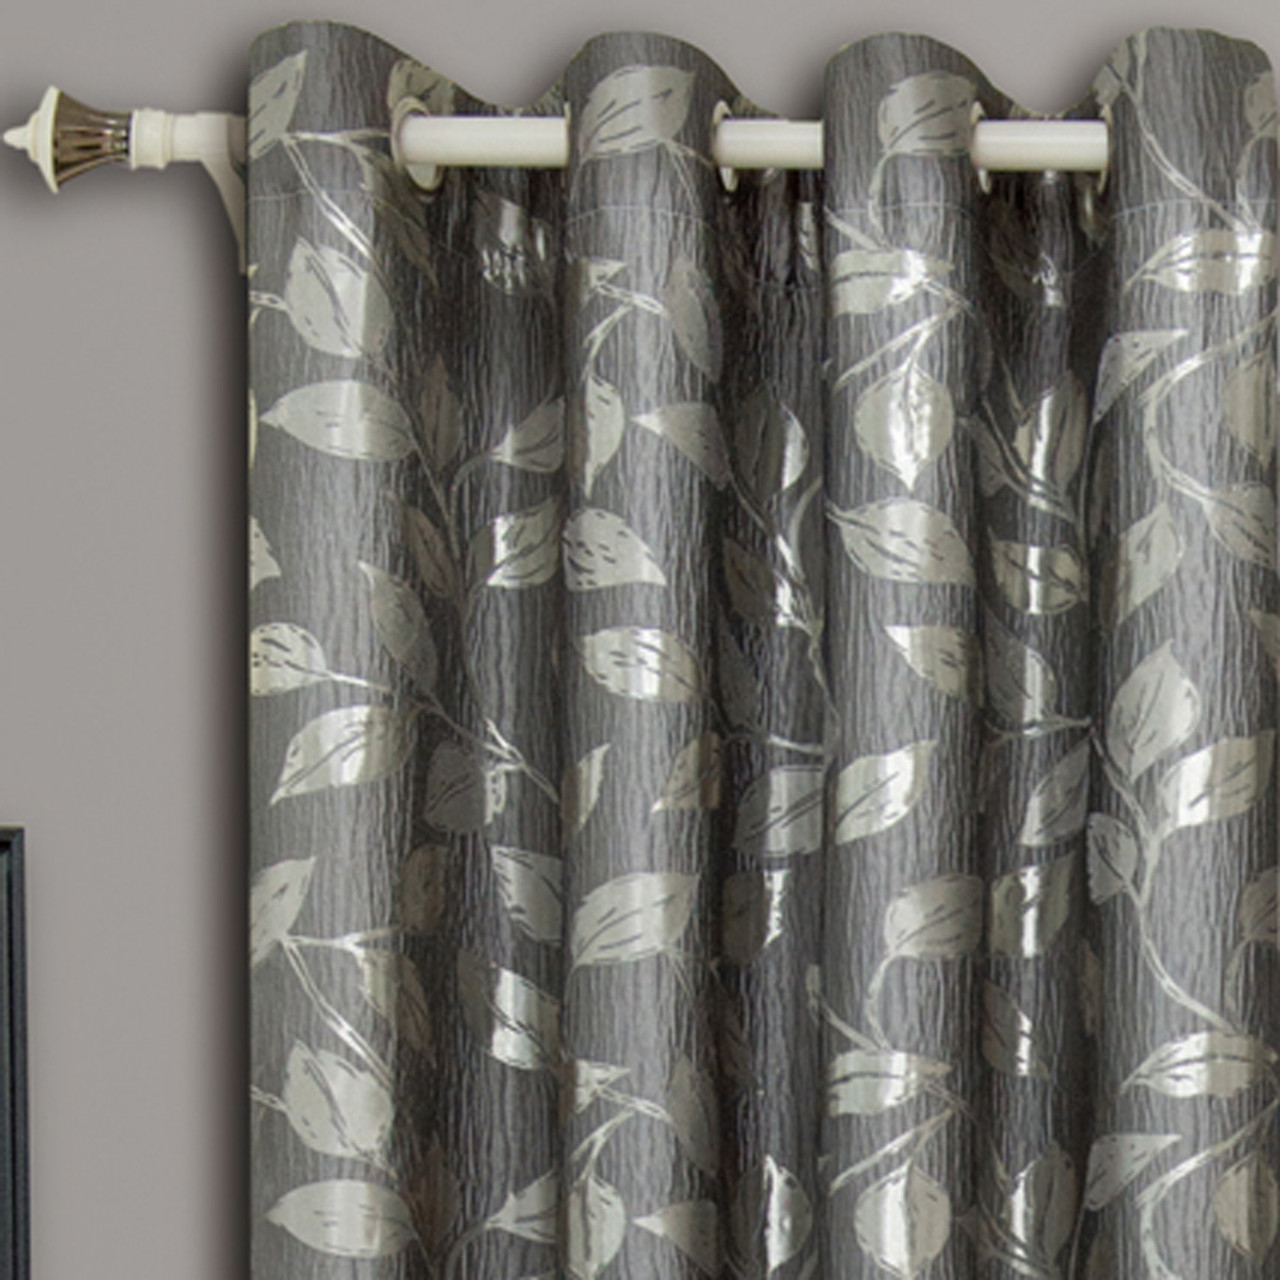 Charlotte Jacquard Drapes Grommet Window Curtain Panels Pair Closeup Grey